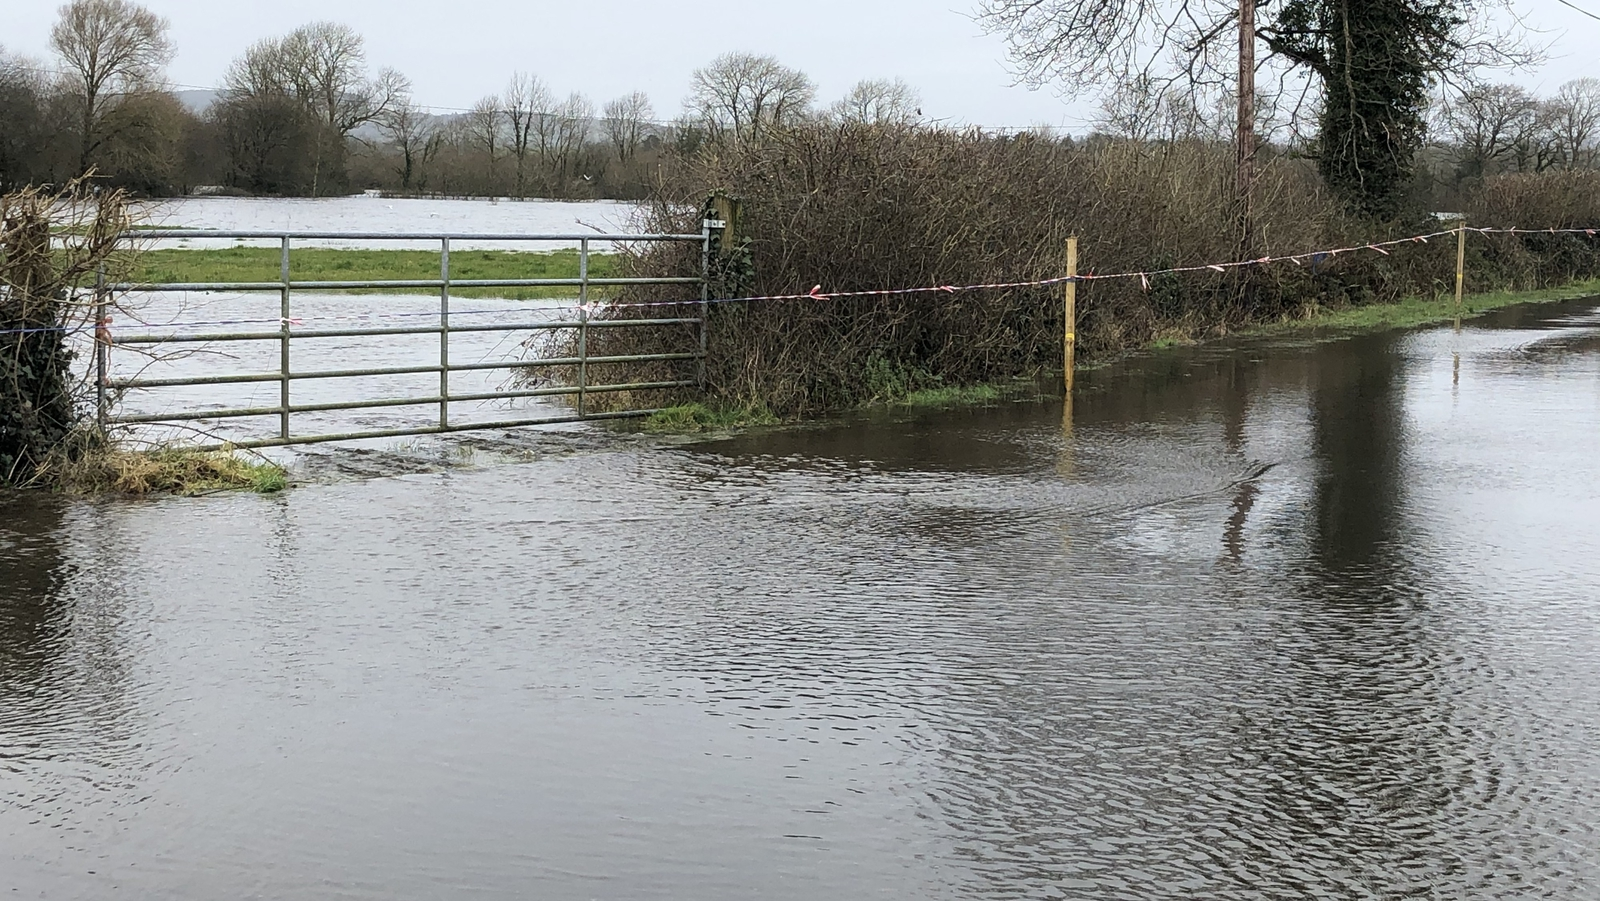 Flood defences along Shannon as rainfall warning issued